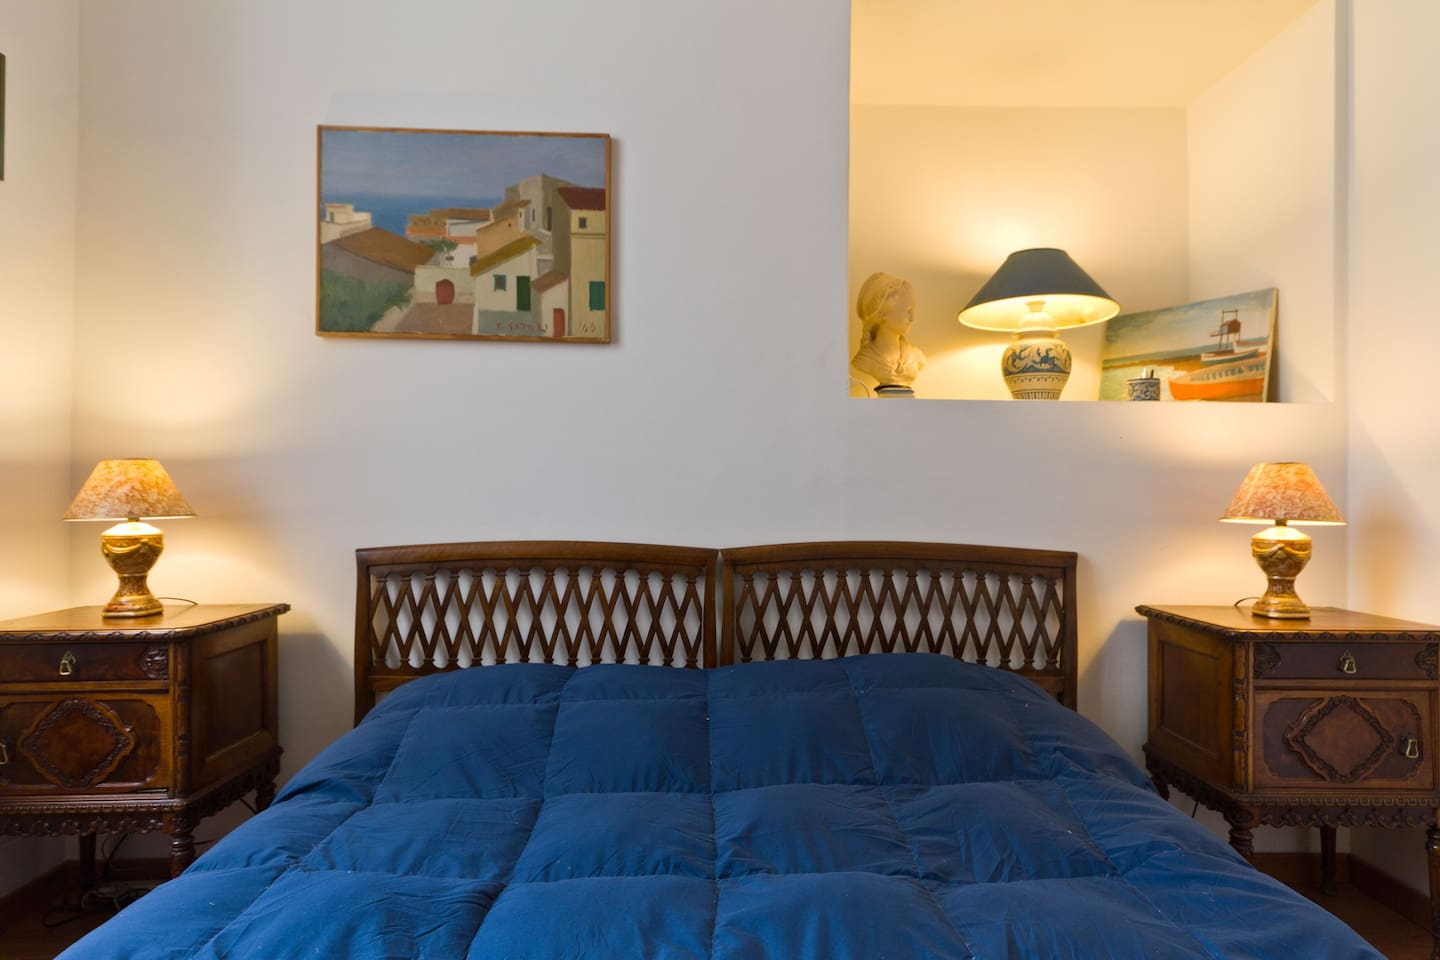 THE BLUE SUITE - 1 QUEEN SIZE BED or 2 SINGLE BED